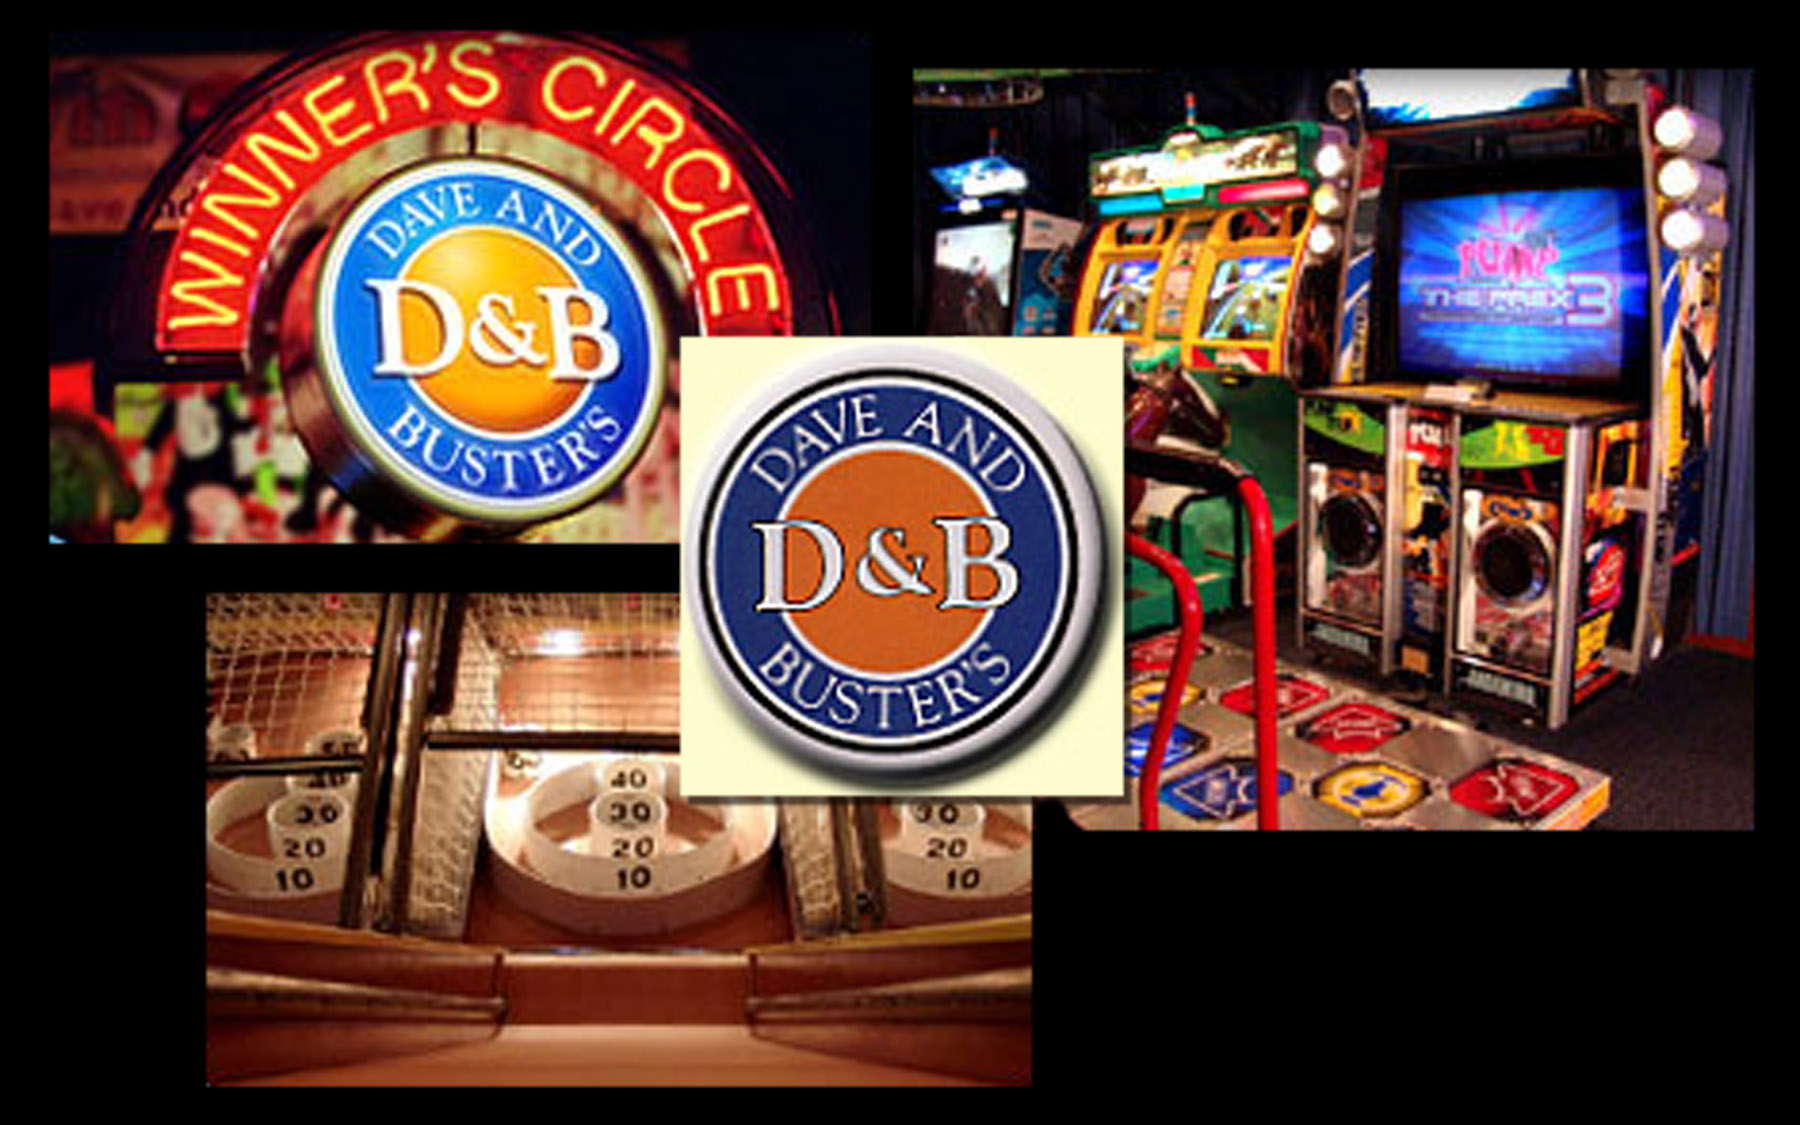 Dave & Buster's in West Nyack, NY